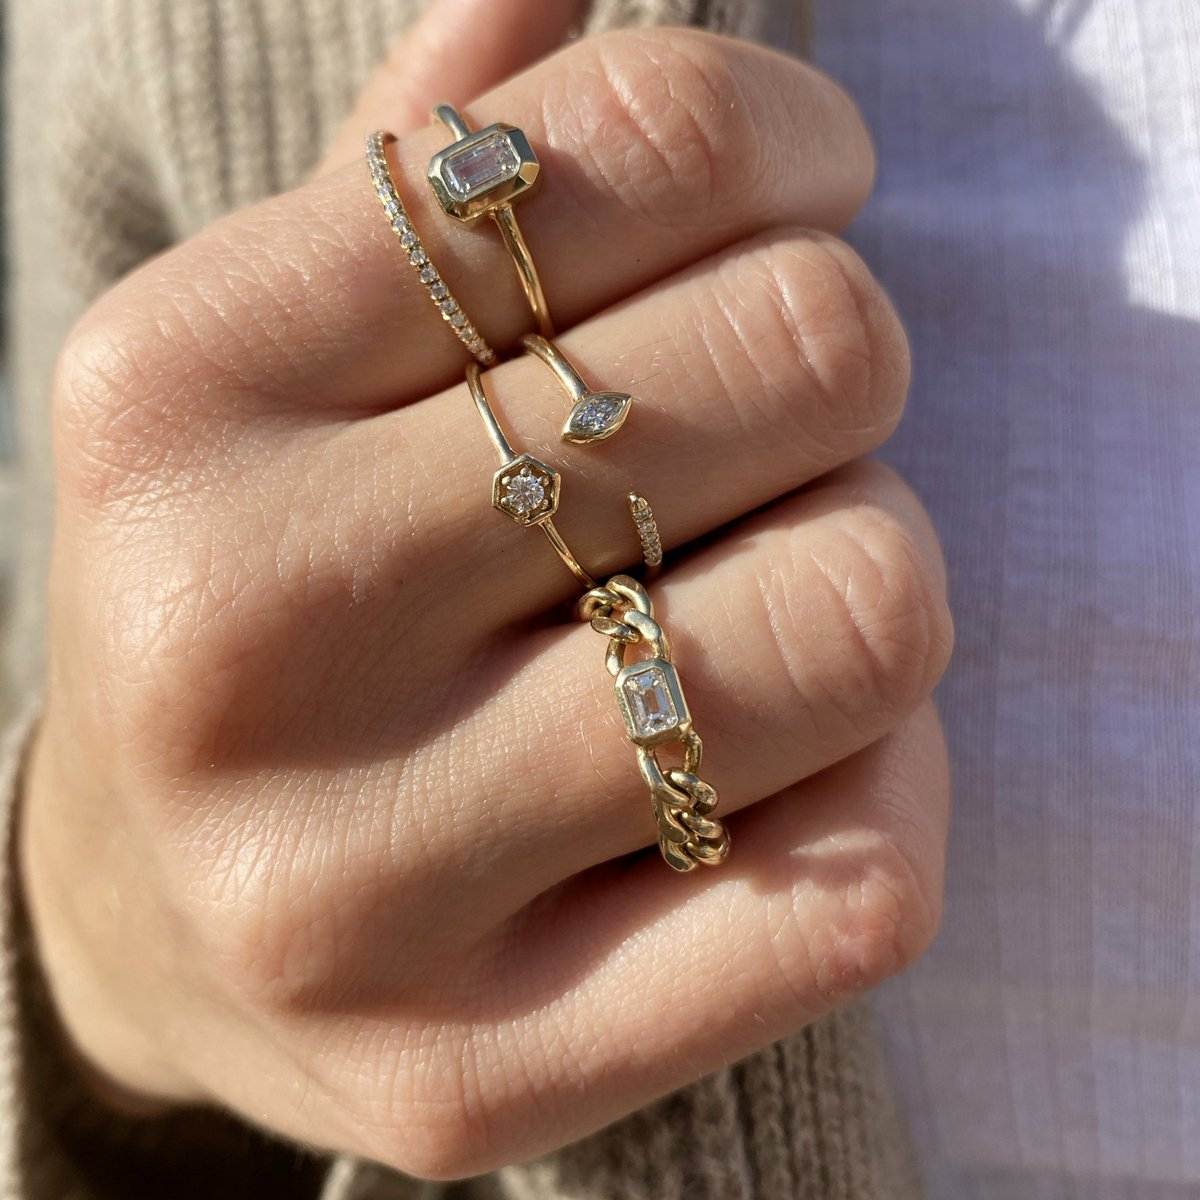 wire work Star Ring Tiny Ring Statement Ring Silver Celestial Ring Dainty  Ring Trendy Ring silver Ring Heart Ring tiny Ring